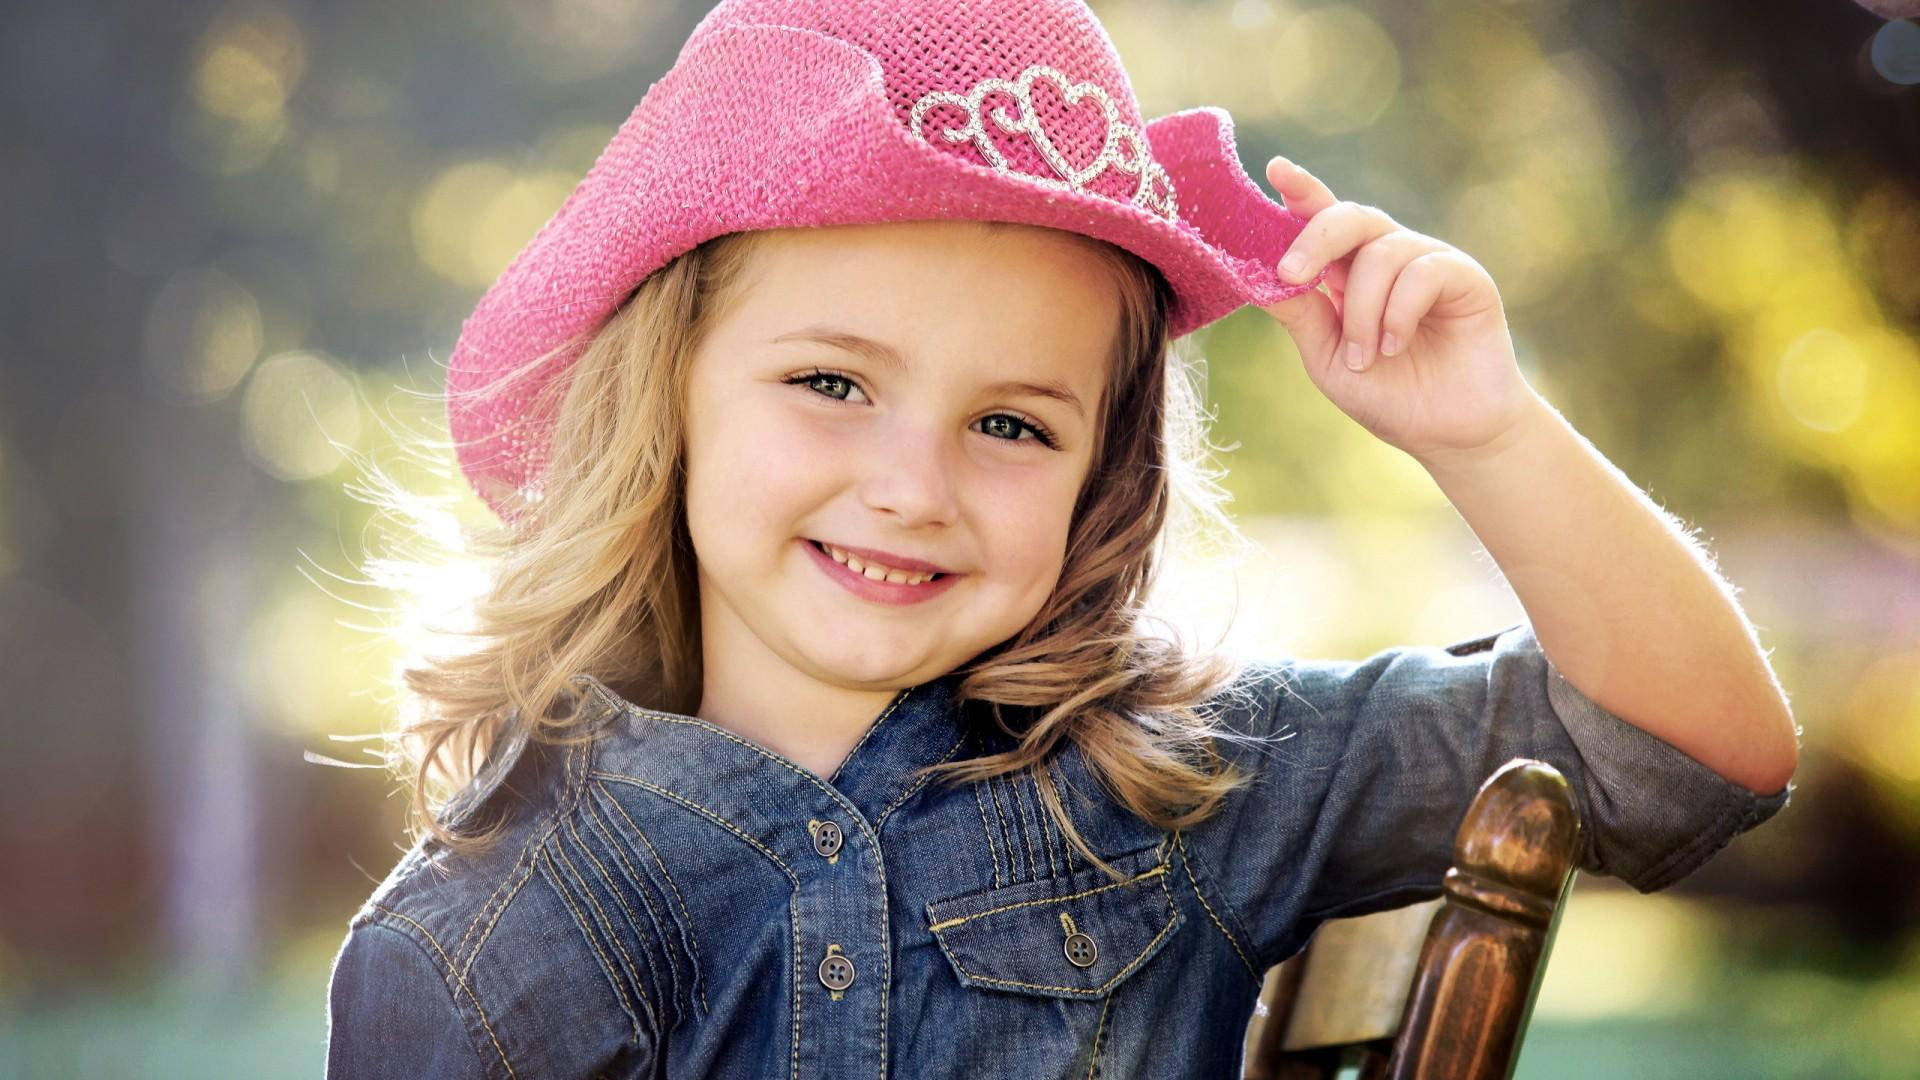 Baby-Girl-With-Hat-HD-HD-wallpaper-wpc9002520